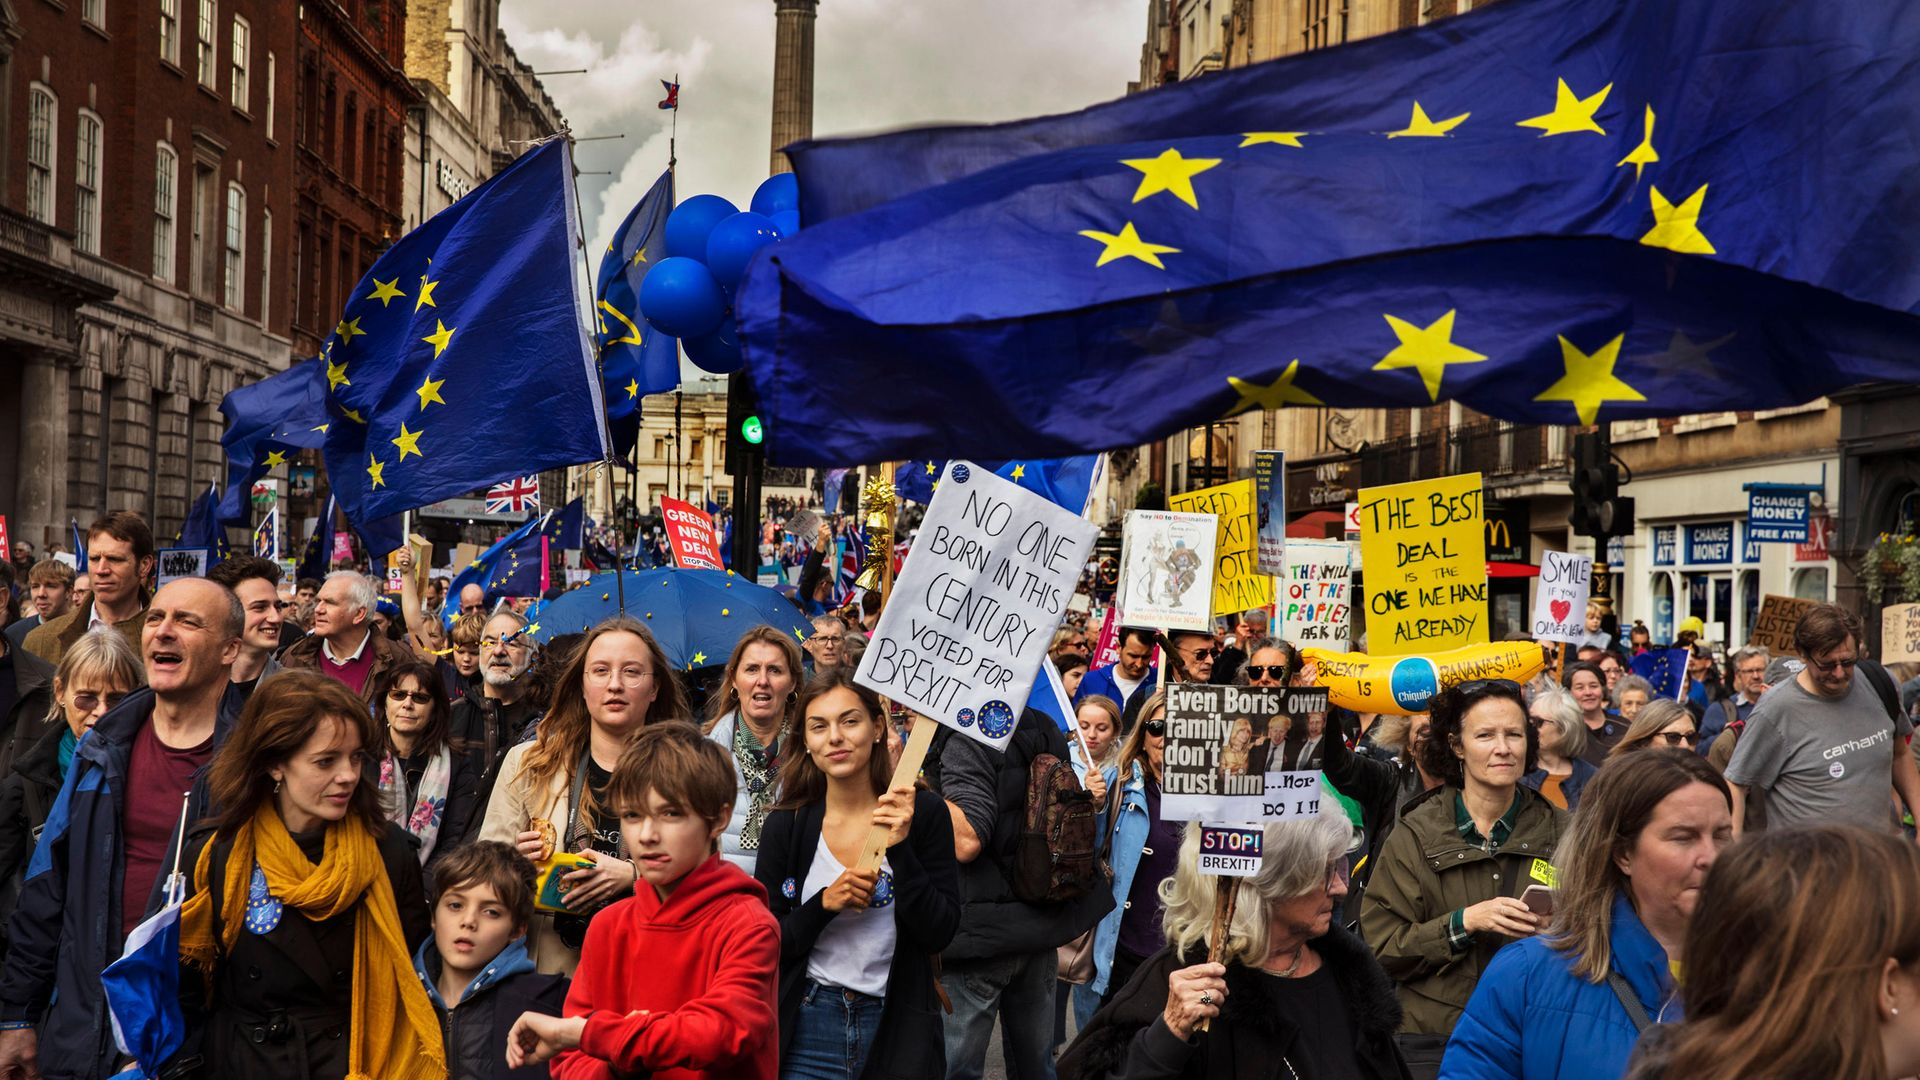 Protestors on an anti-Brexit march in central London, October 2019 - Credit: In Pictures via Getty Images